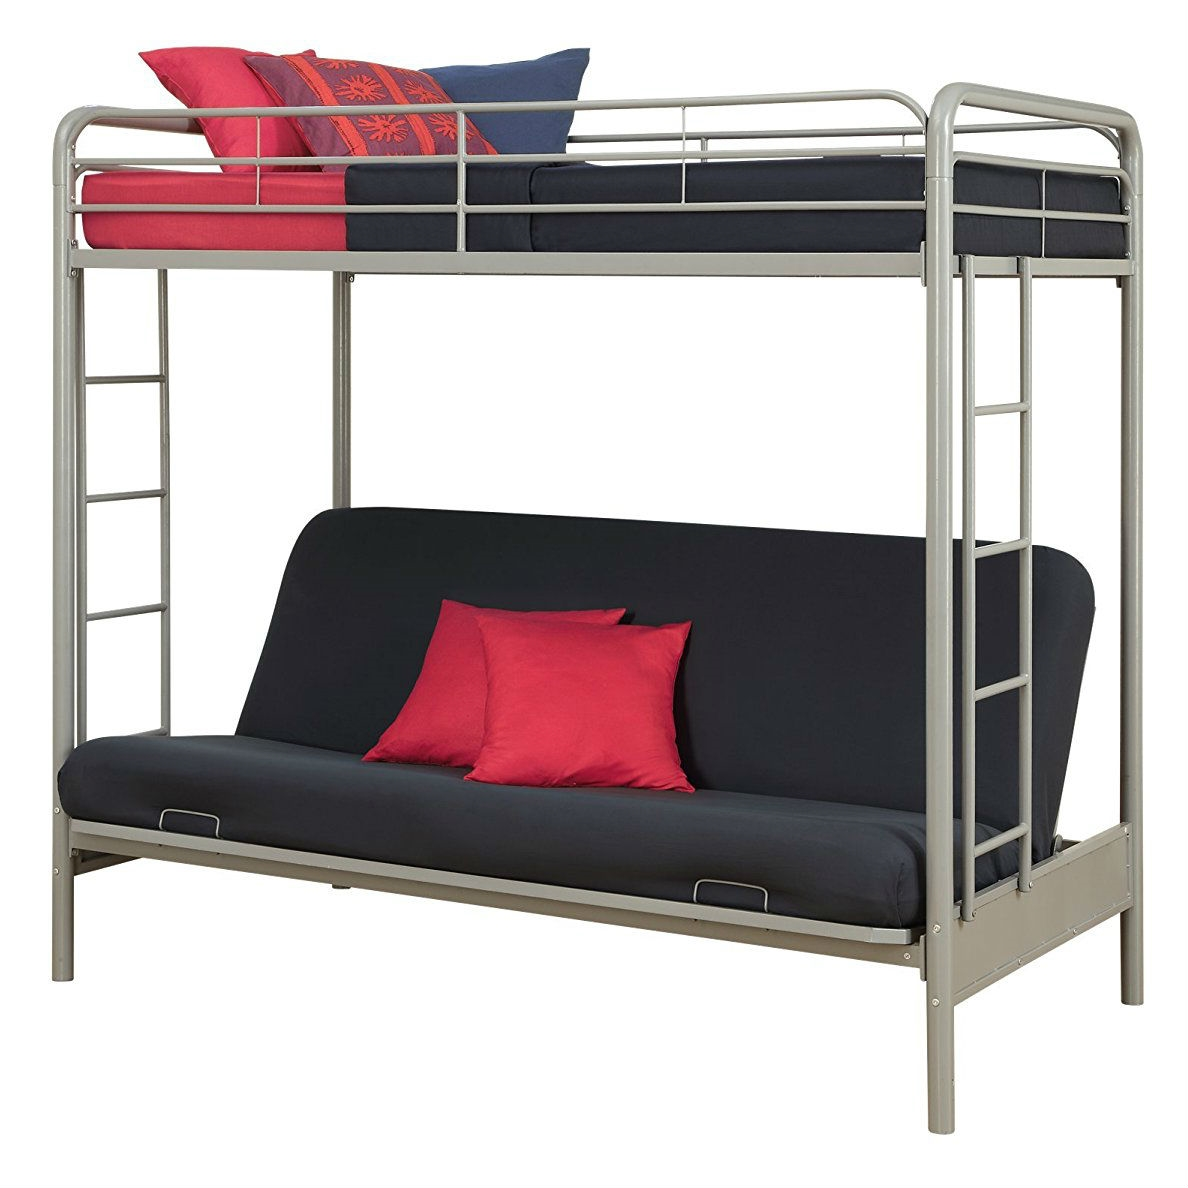 Metal Twin Over Futon Bunk Bed Cheaper Than Retail Price Buy Clothing Accessories And Lifestyle Products For Women Men